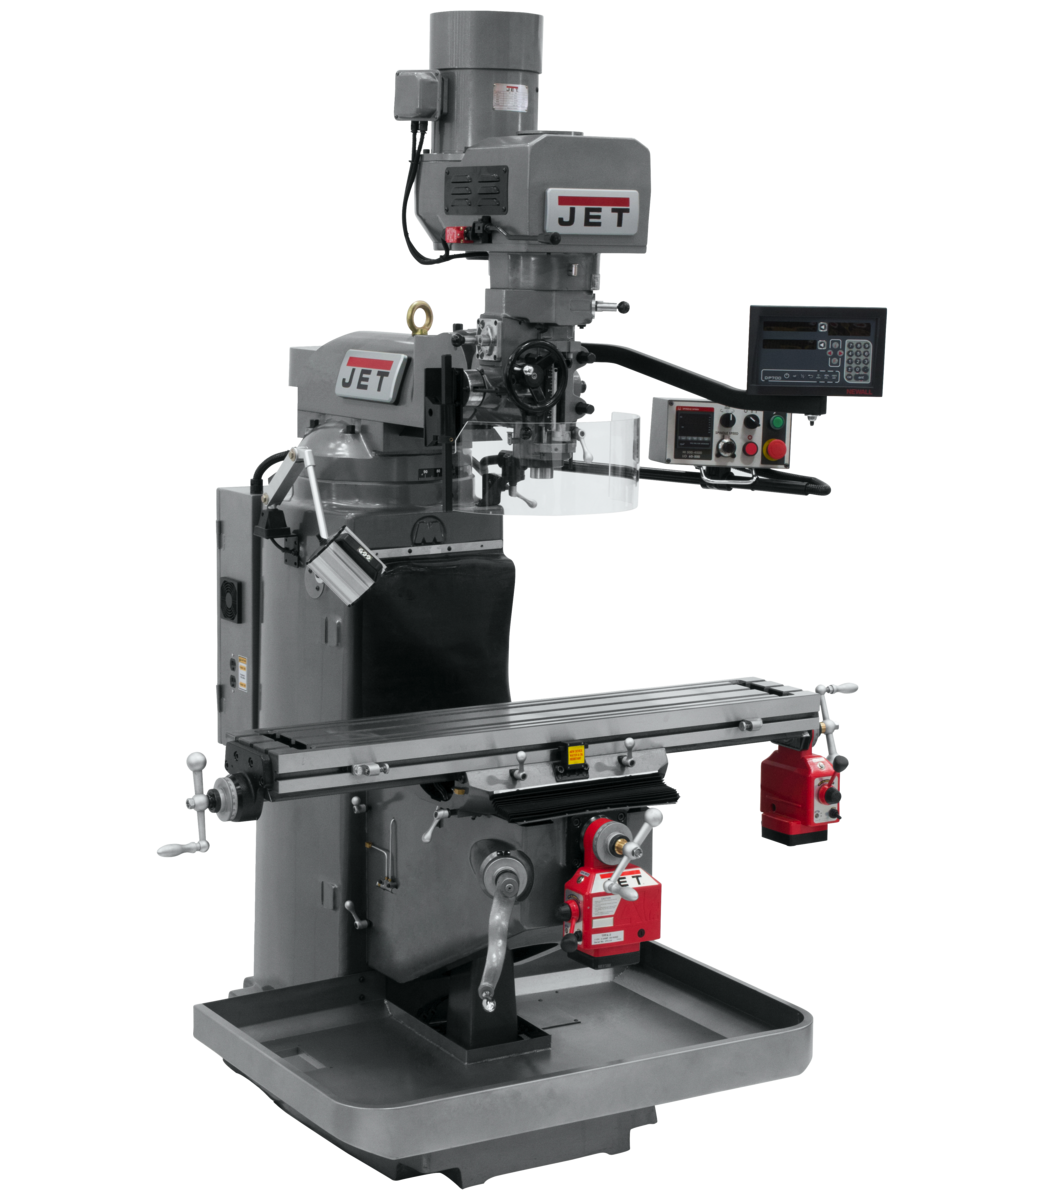 JTM-949EVS Mill With 3-Axis Newall DP700 DRO (Knee) With X and Y-Axis Powerfeeds